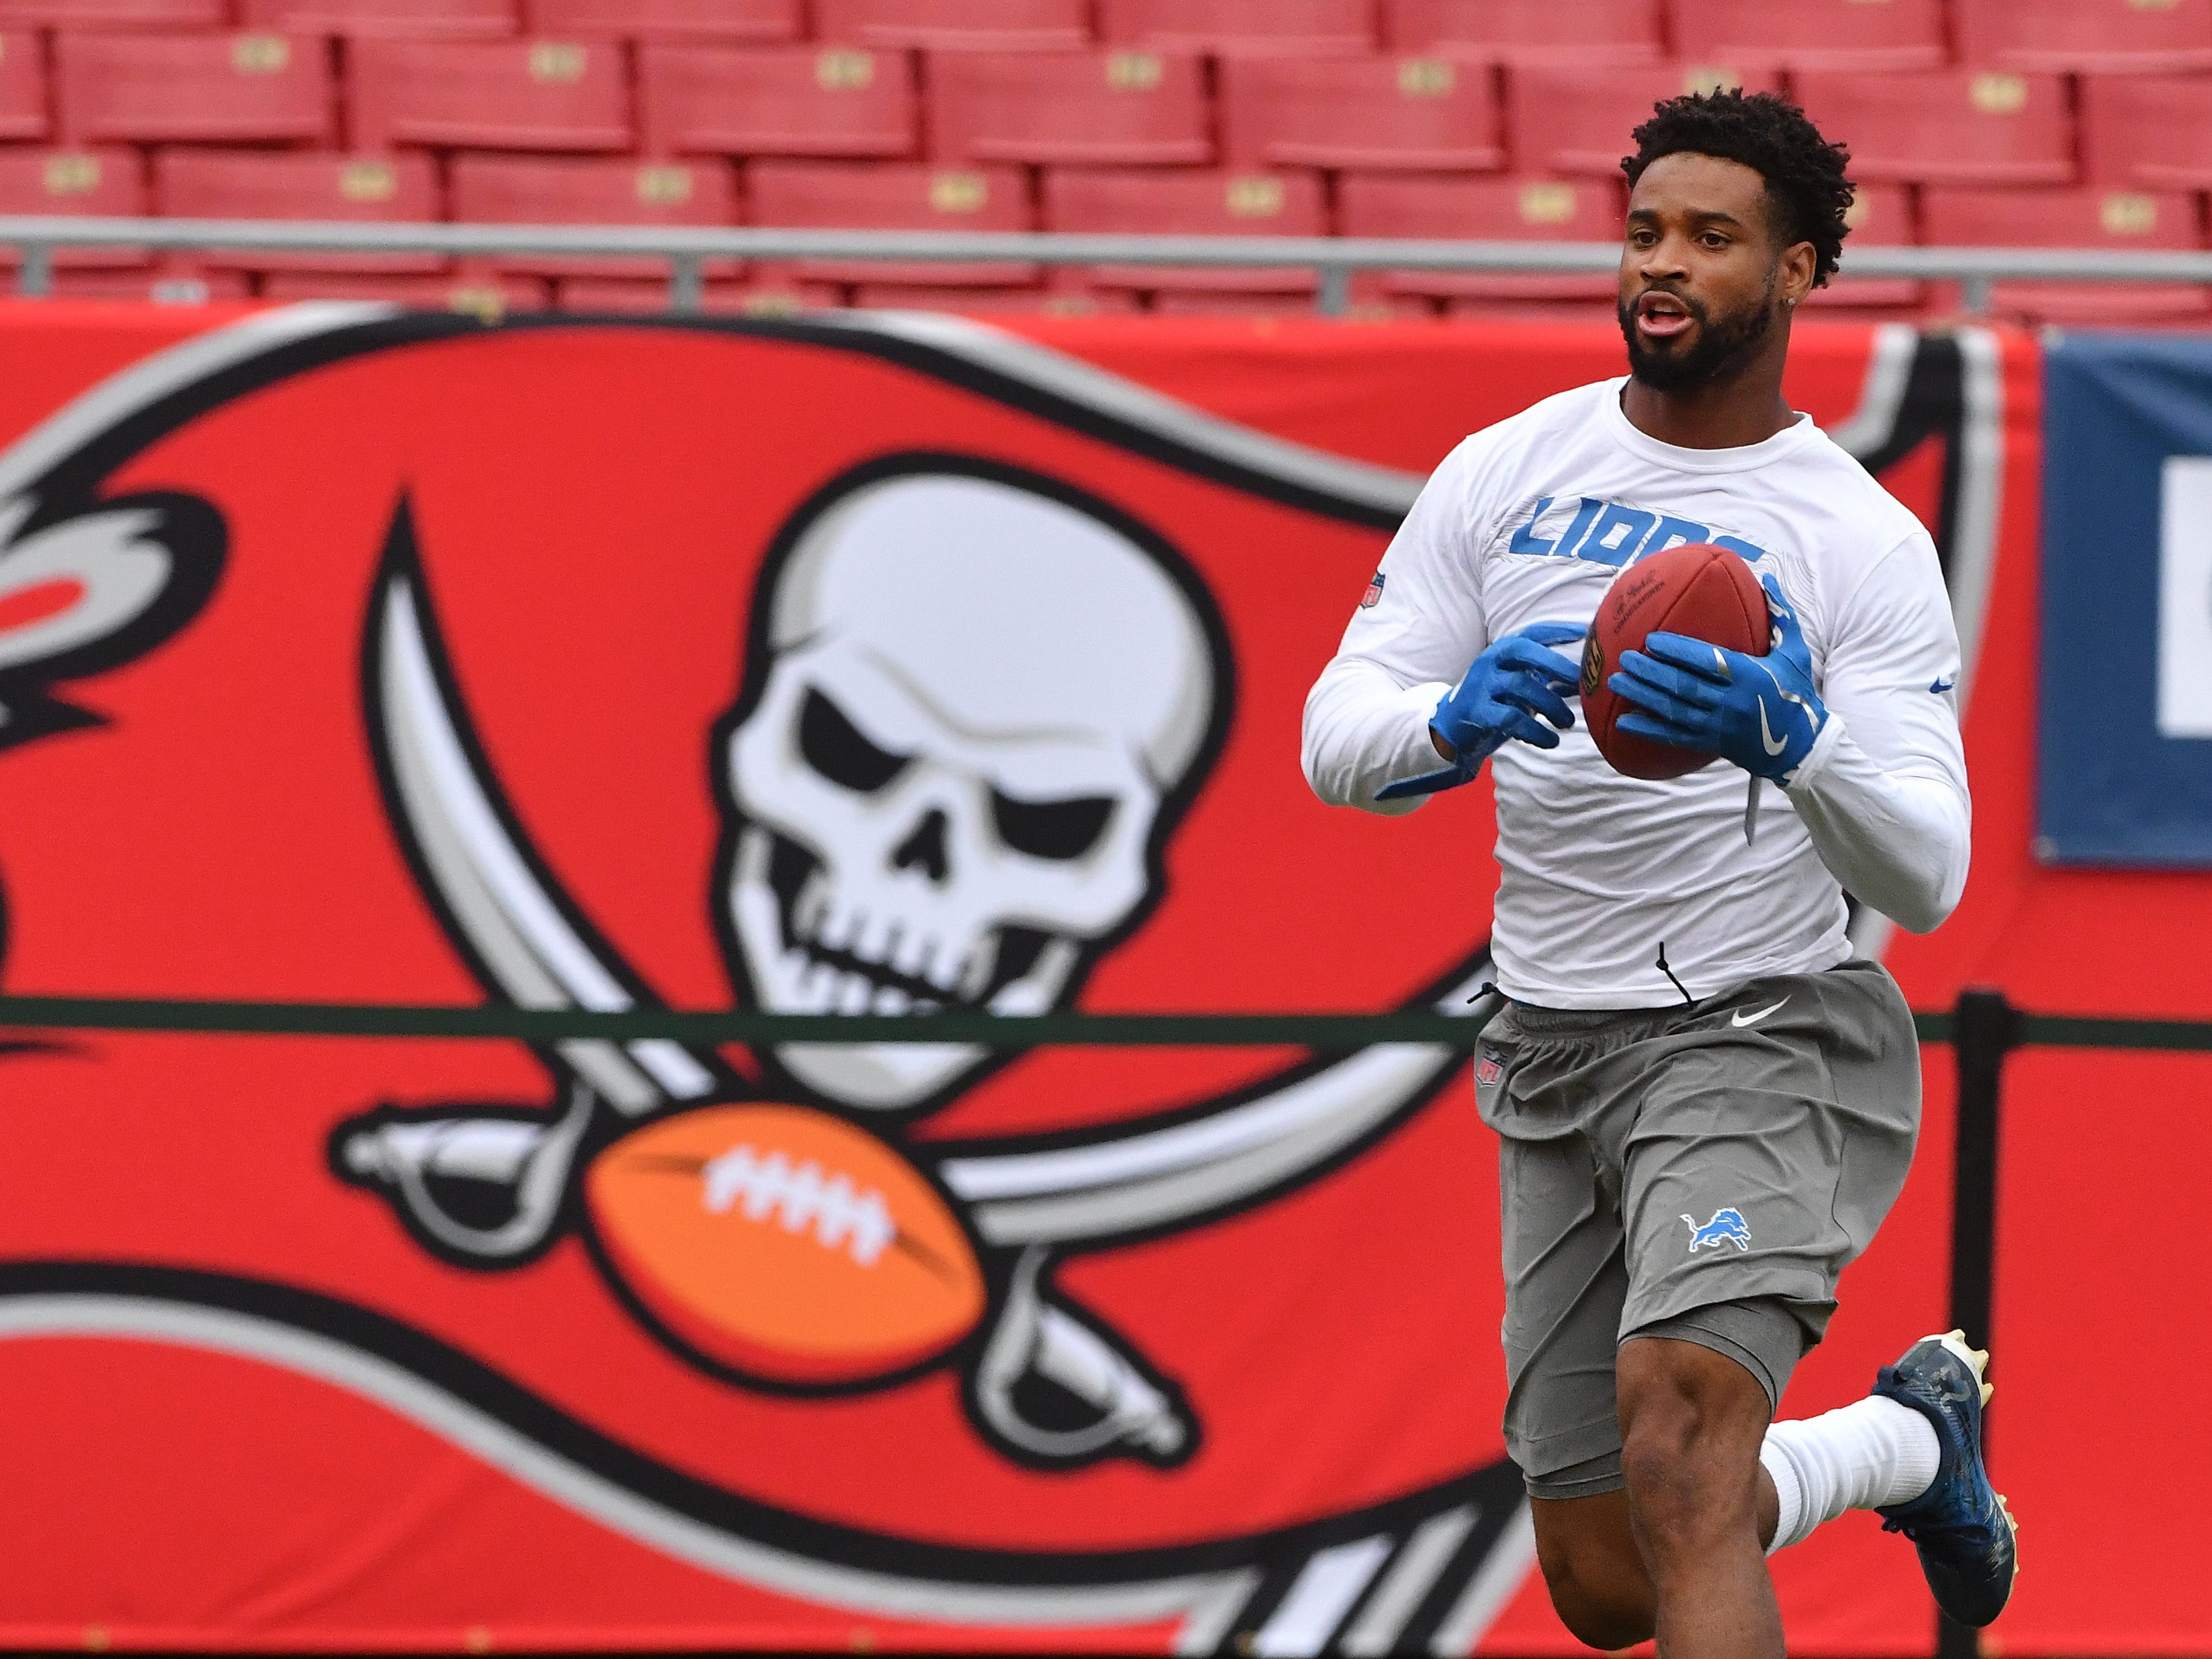 Lions corner back Darius Slay jogs on the field during warmups before Detroit takes on the Tampa Bay Buccaneers.